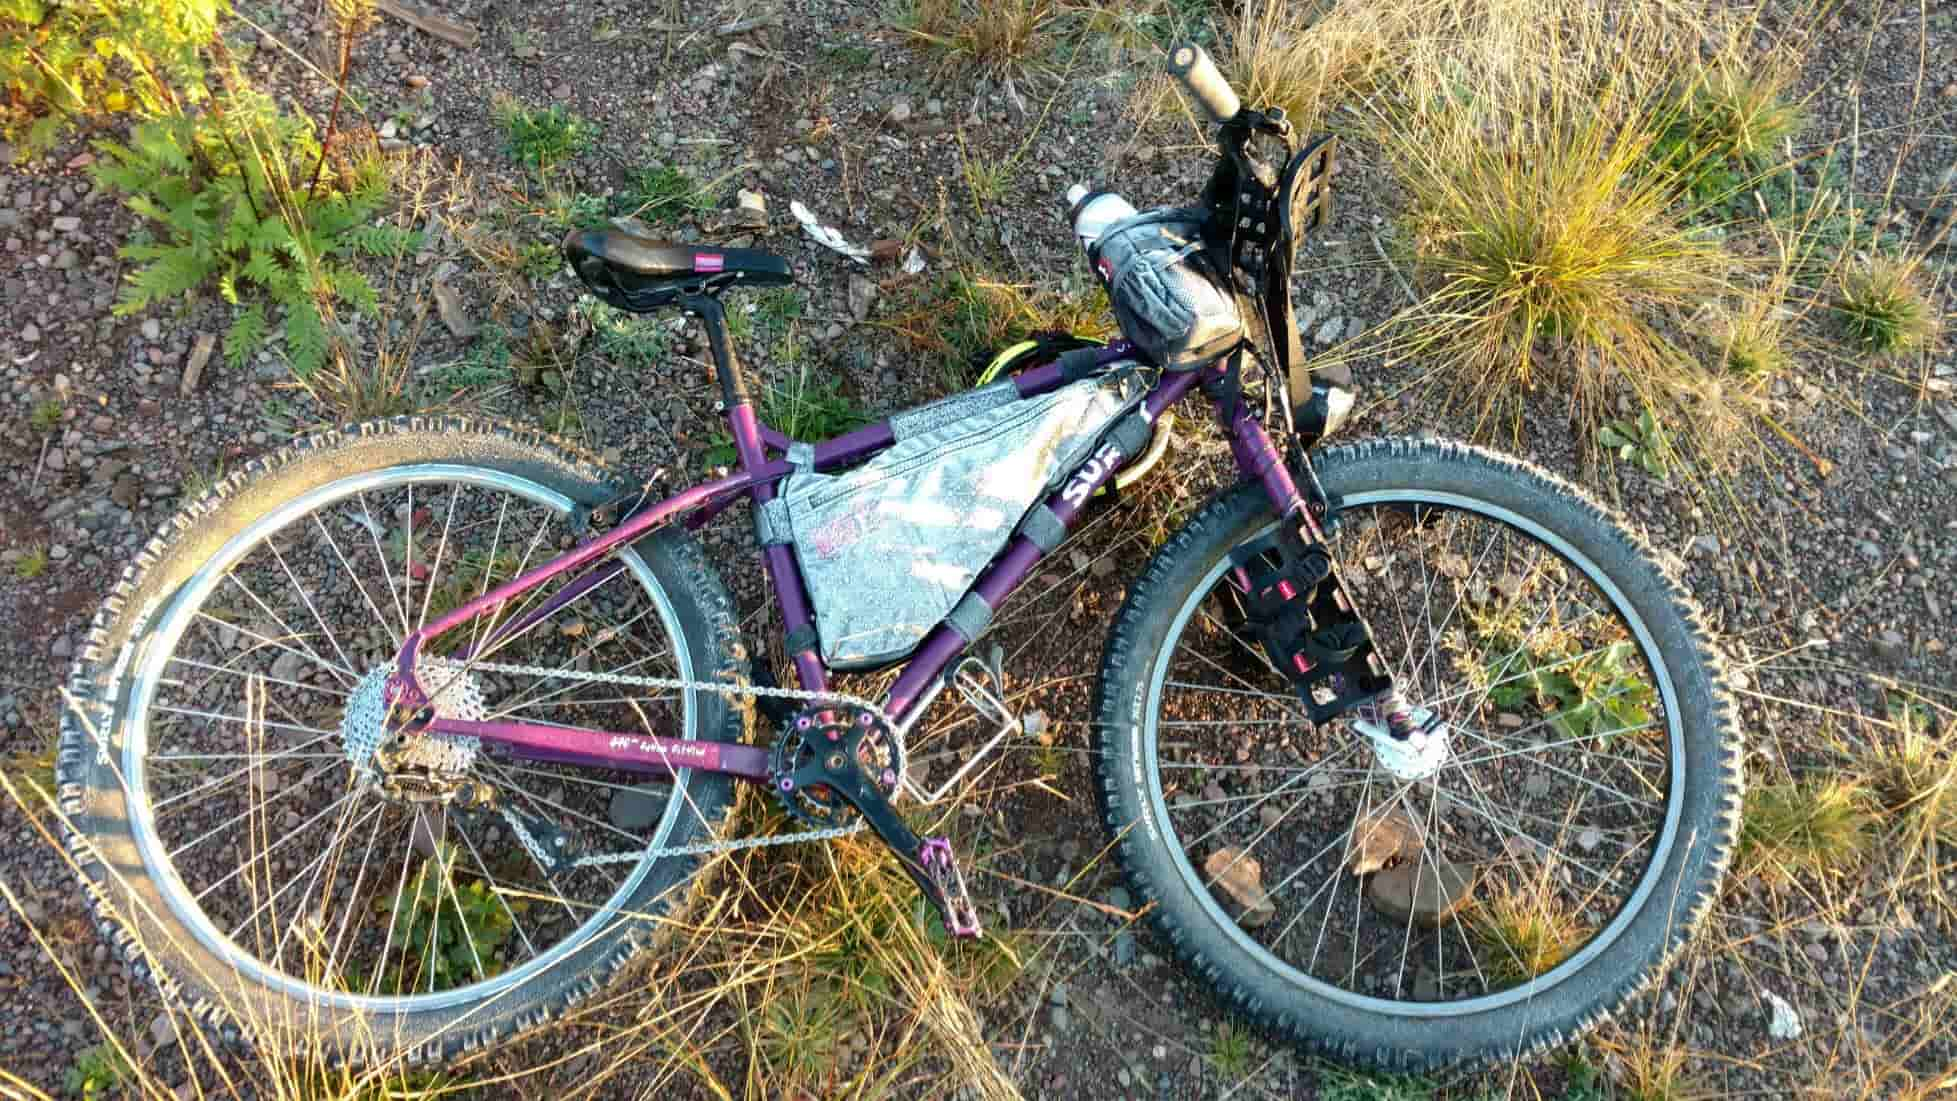 Downward left side view of a purple Surly Troll bike loaded with gear, laying on it's left side in gravel and weeds